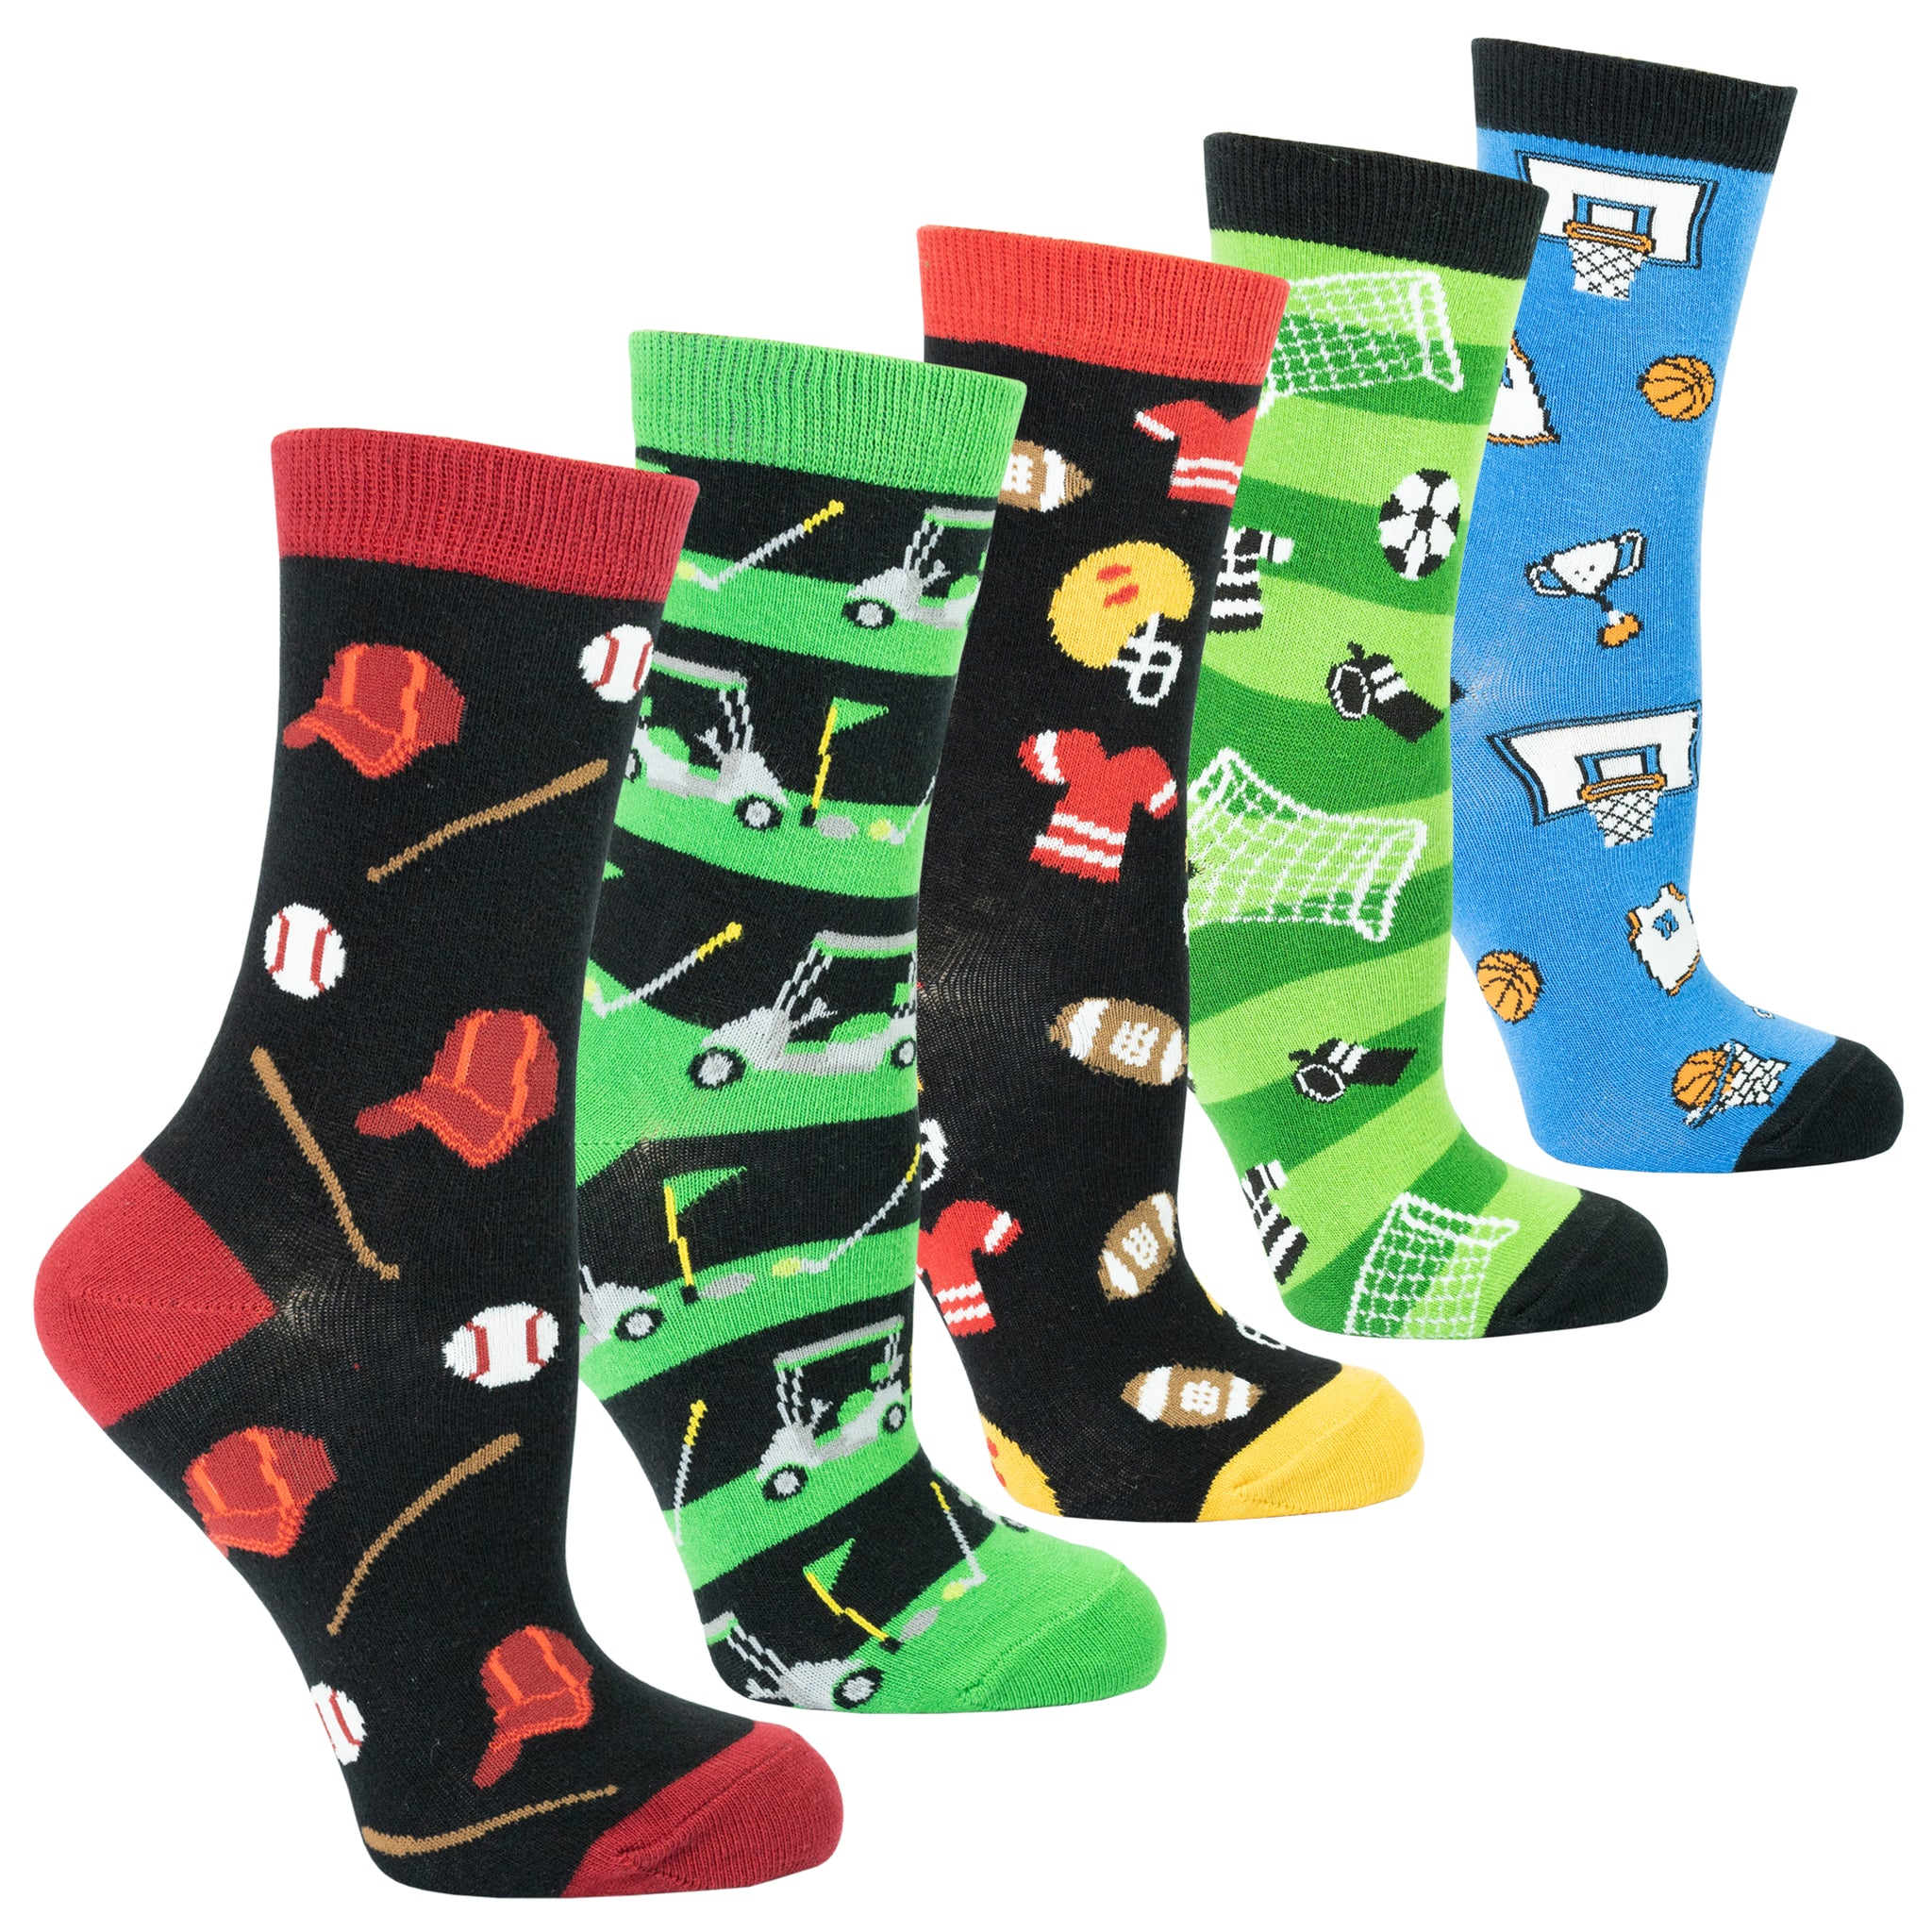 Women's Sports Socks Set